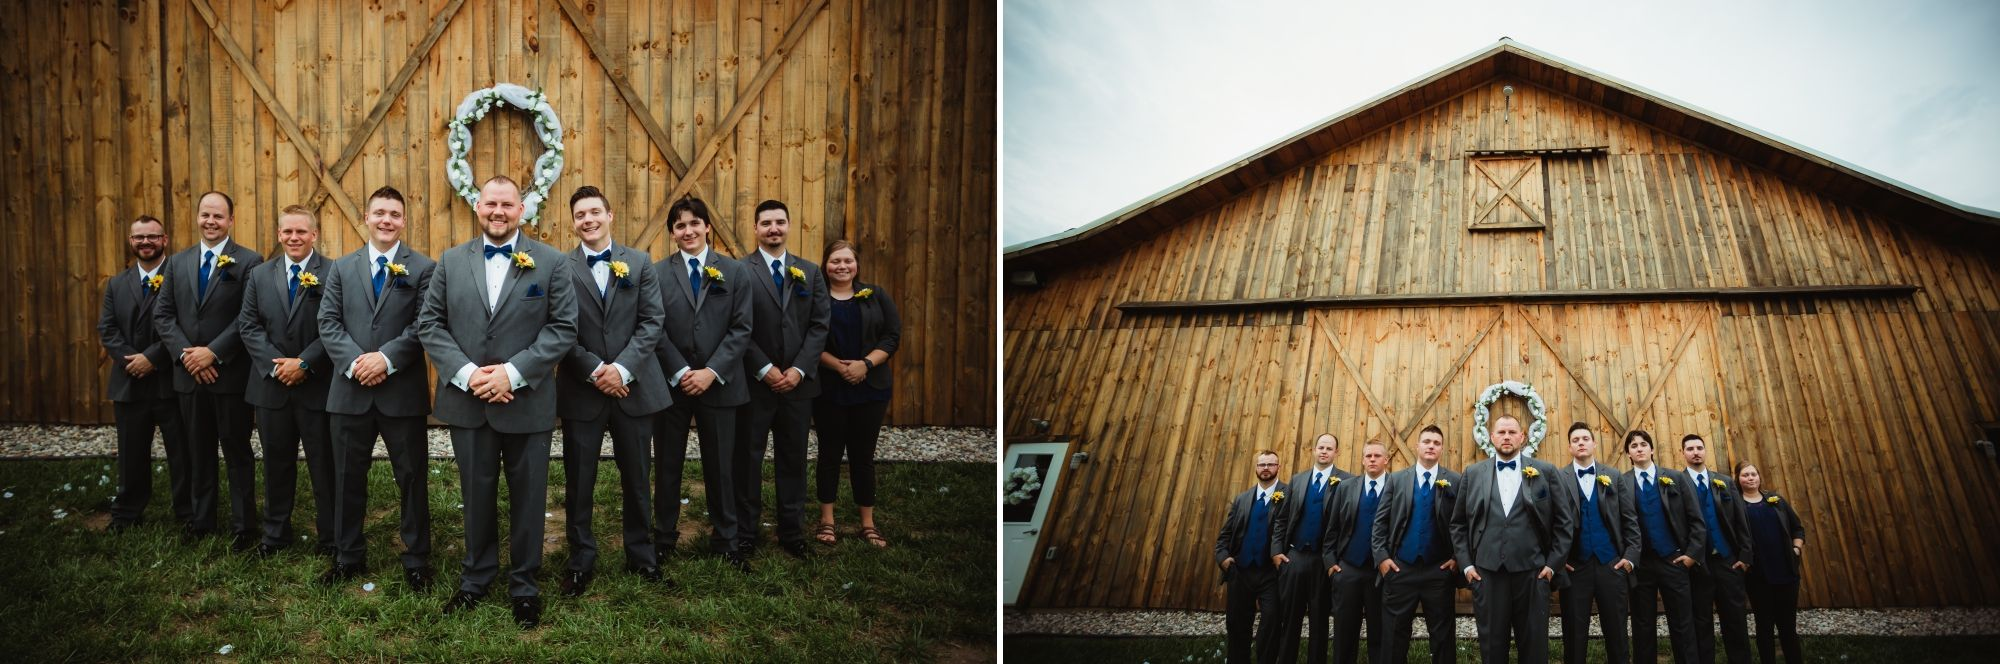 Groom, groomsmen, and woman lined up in front of the barn in a V shape.